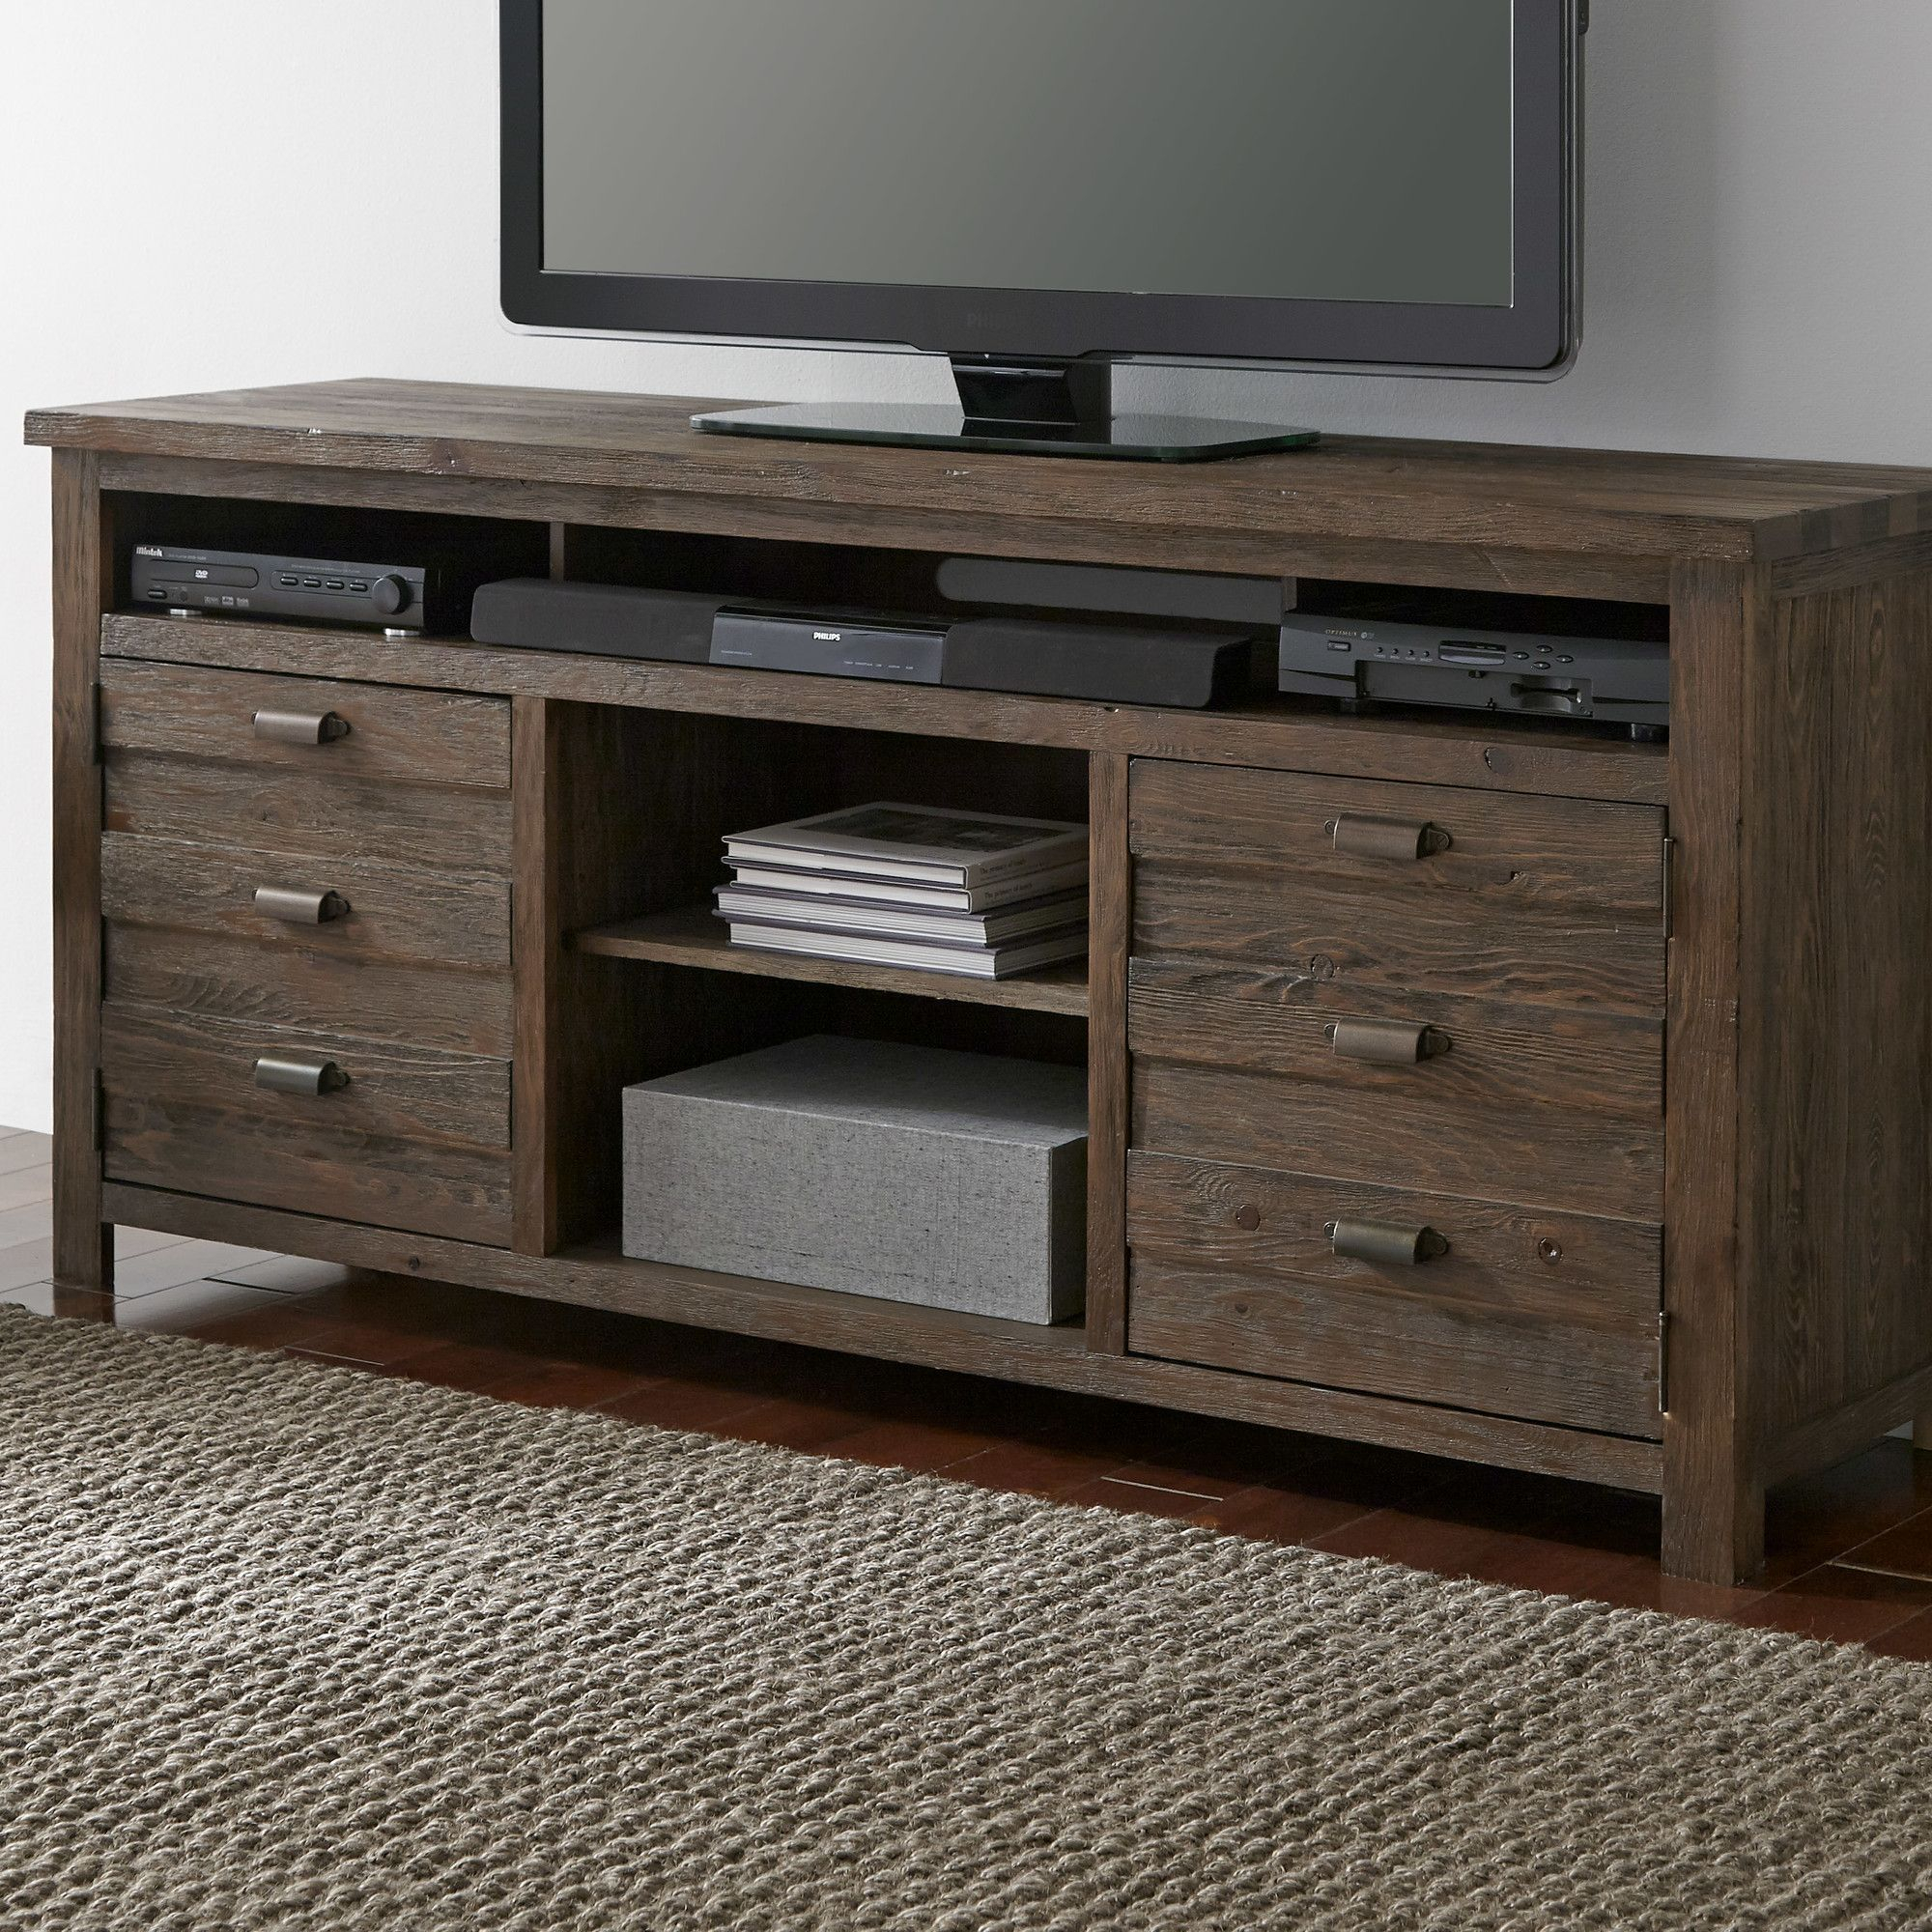 Hawthorne Tv Stand | Products | Pinterest | Tv Stands And Consoles pertaining to Canyon 74 Inch Tv Stands (Image 8 of 30)